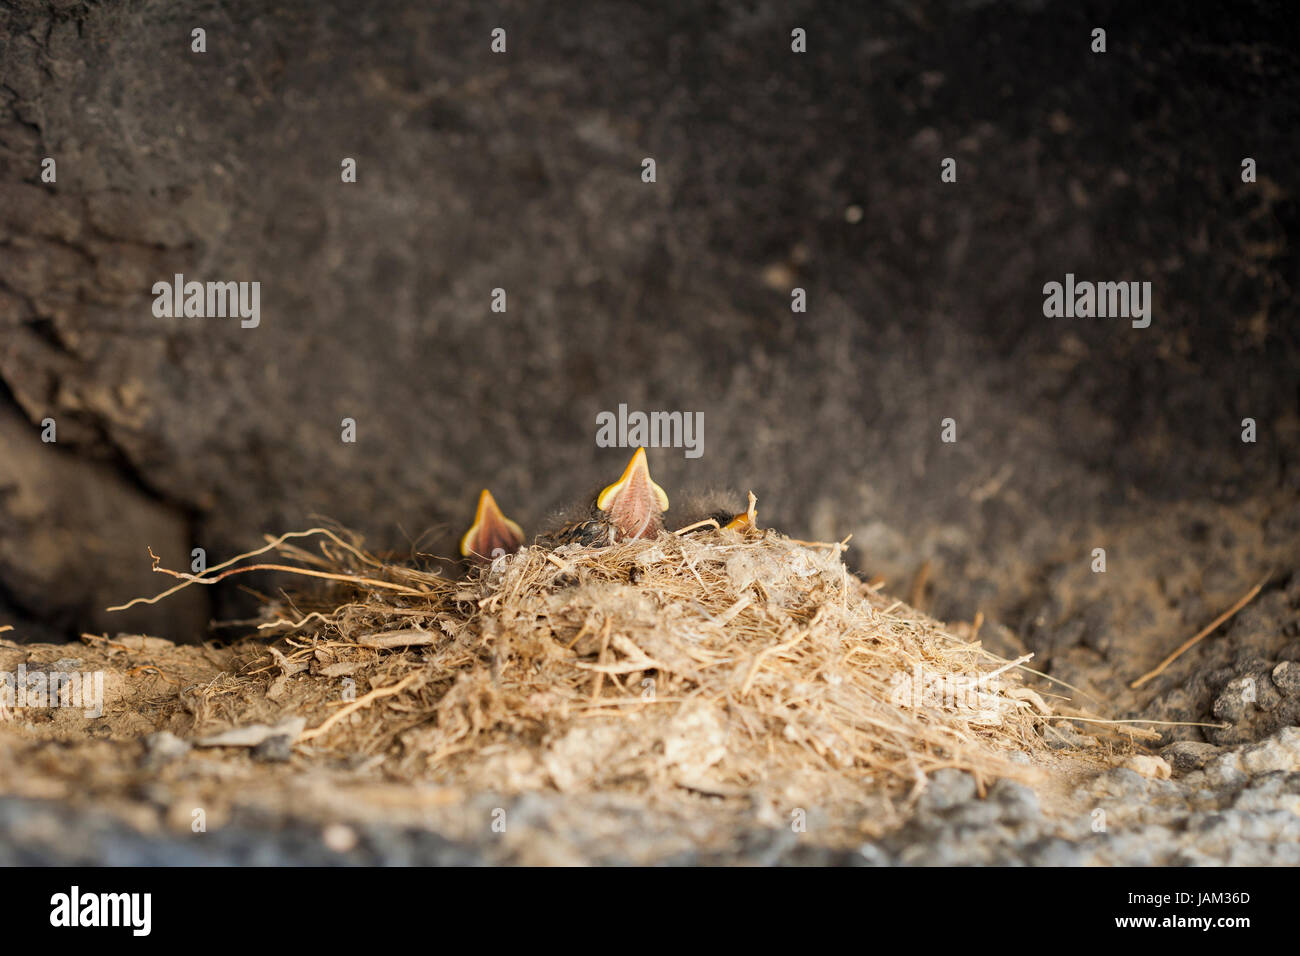 Newly hatched bird chicks waiting for food - USA - Stock Image